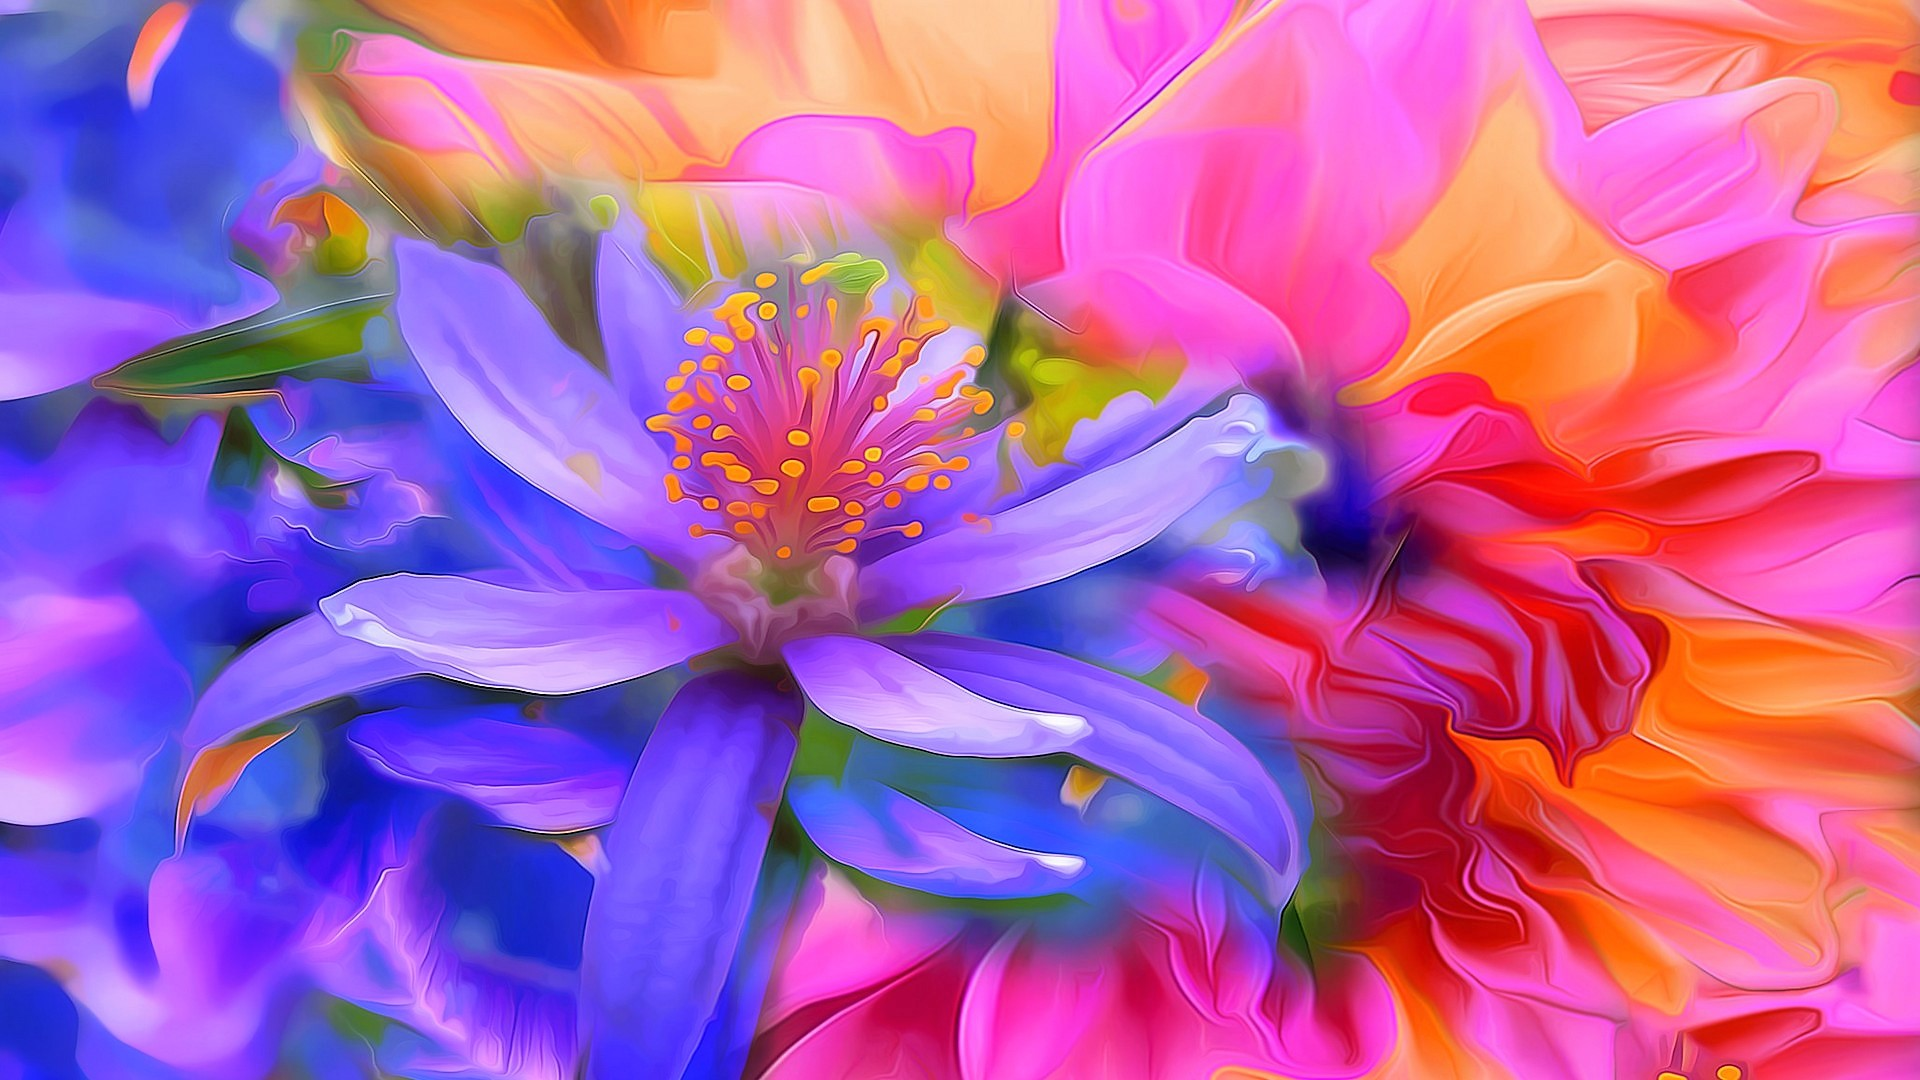 Abstract Flower Colors Colorful 1920x1080